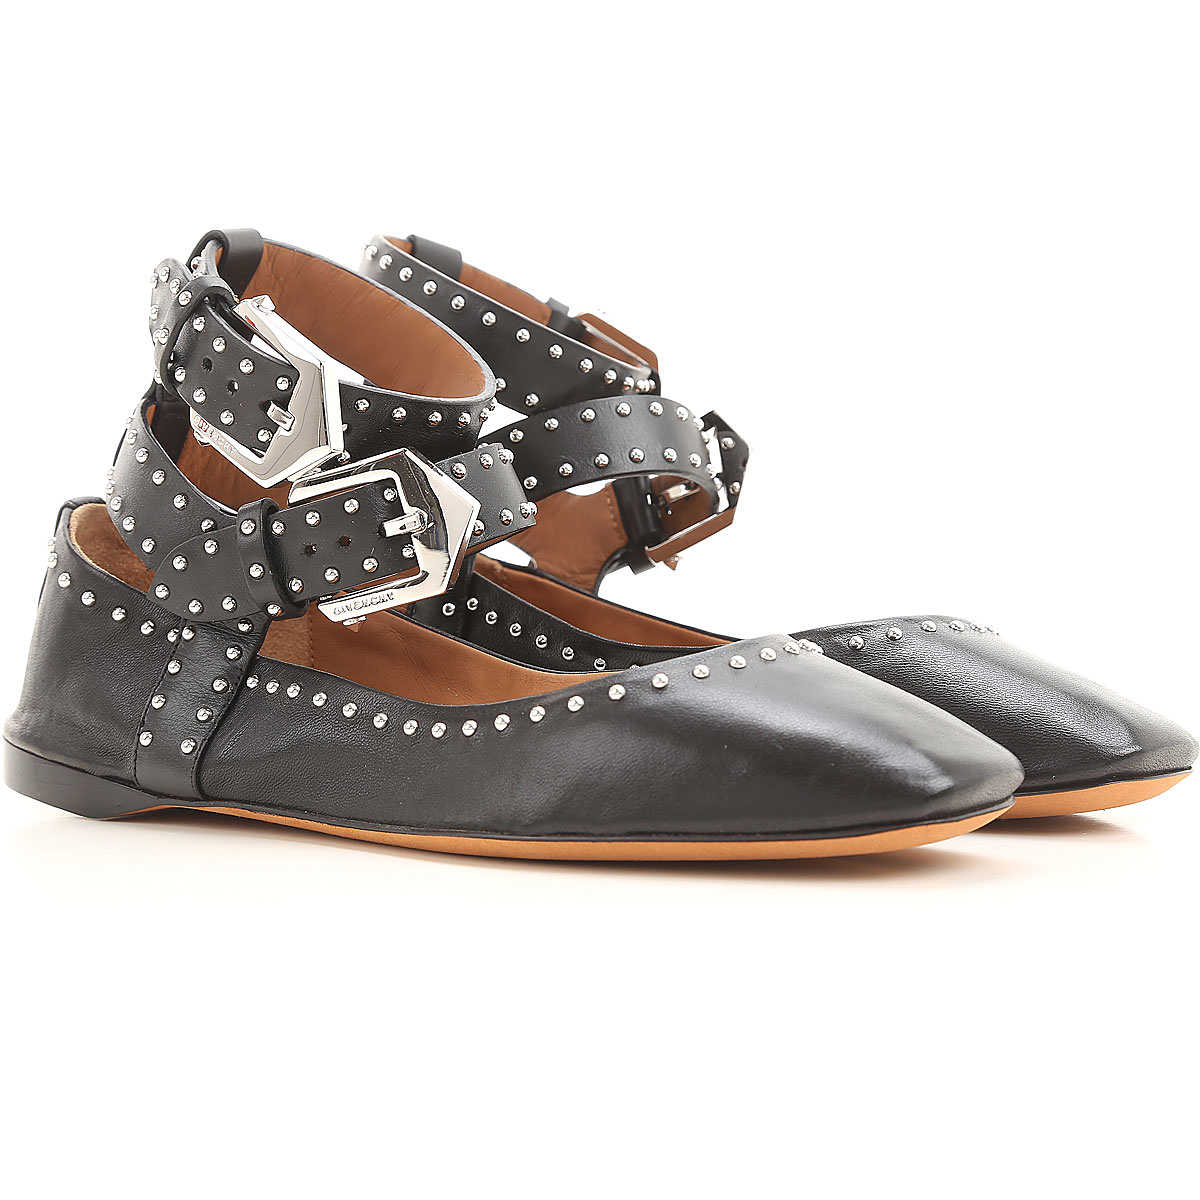 Givenchy Ballet Flats Ballerina Shoes for Women On Sale in Outlet Black DK - GOOFASH - Womens BALLERINAS